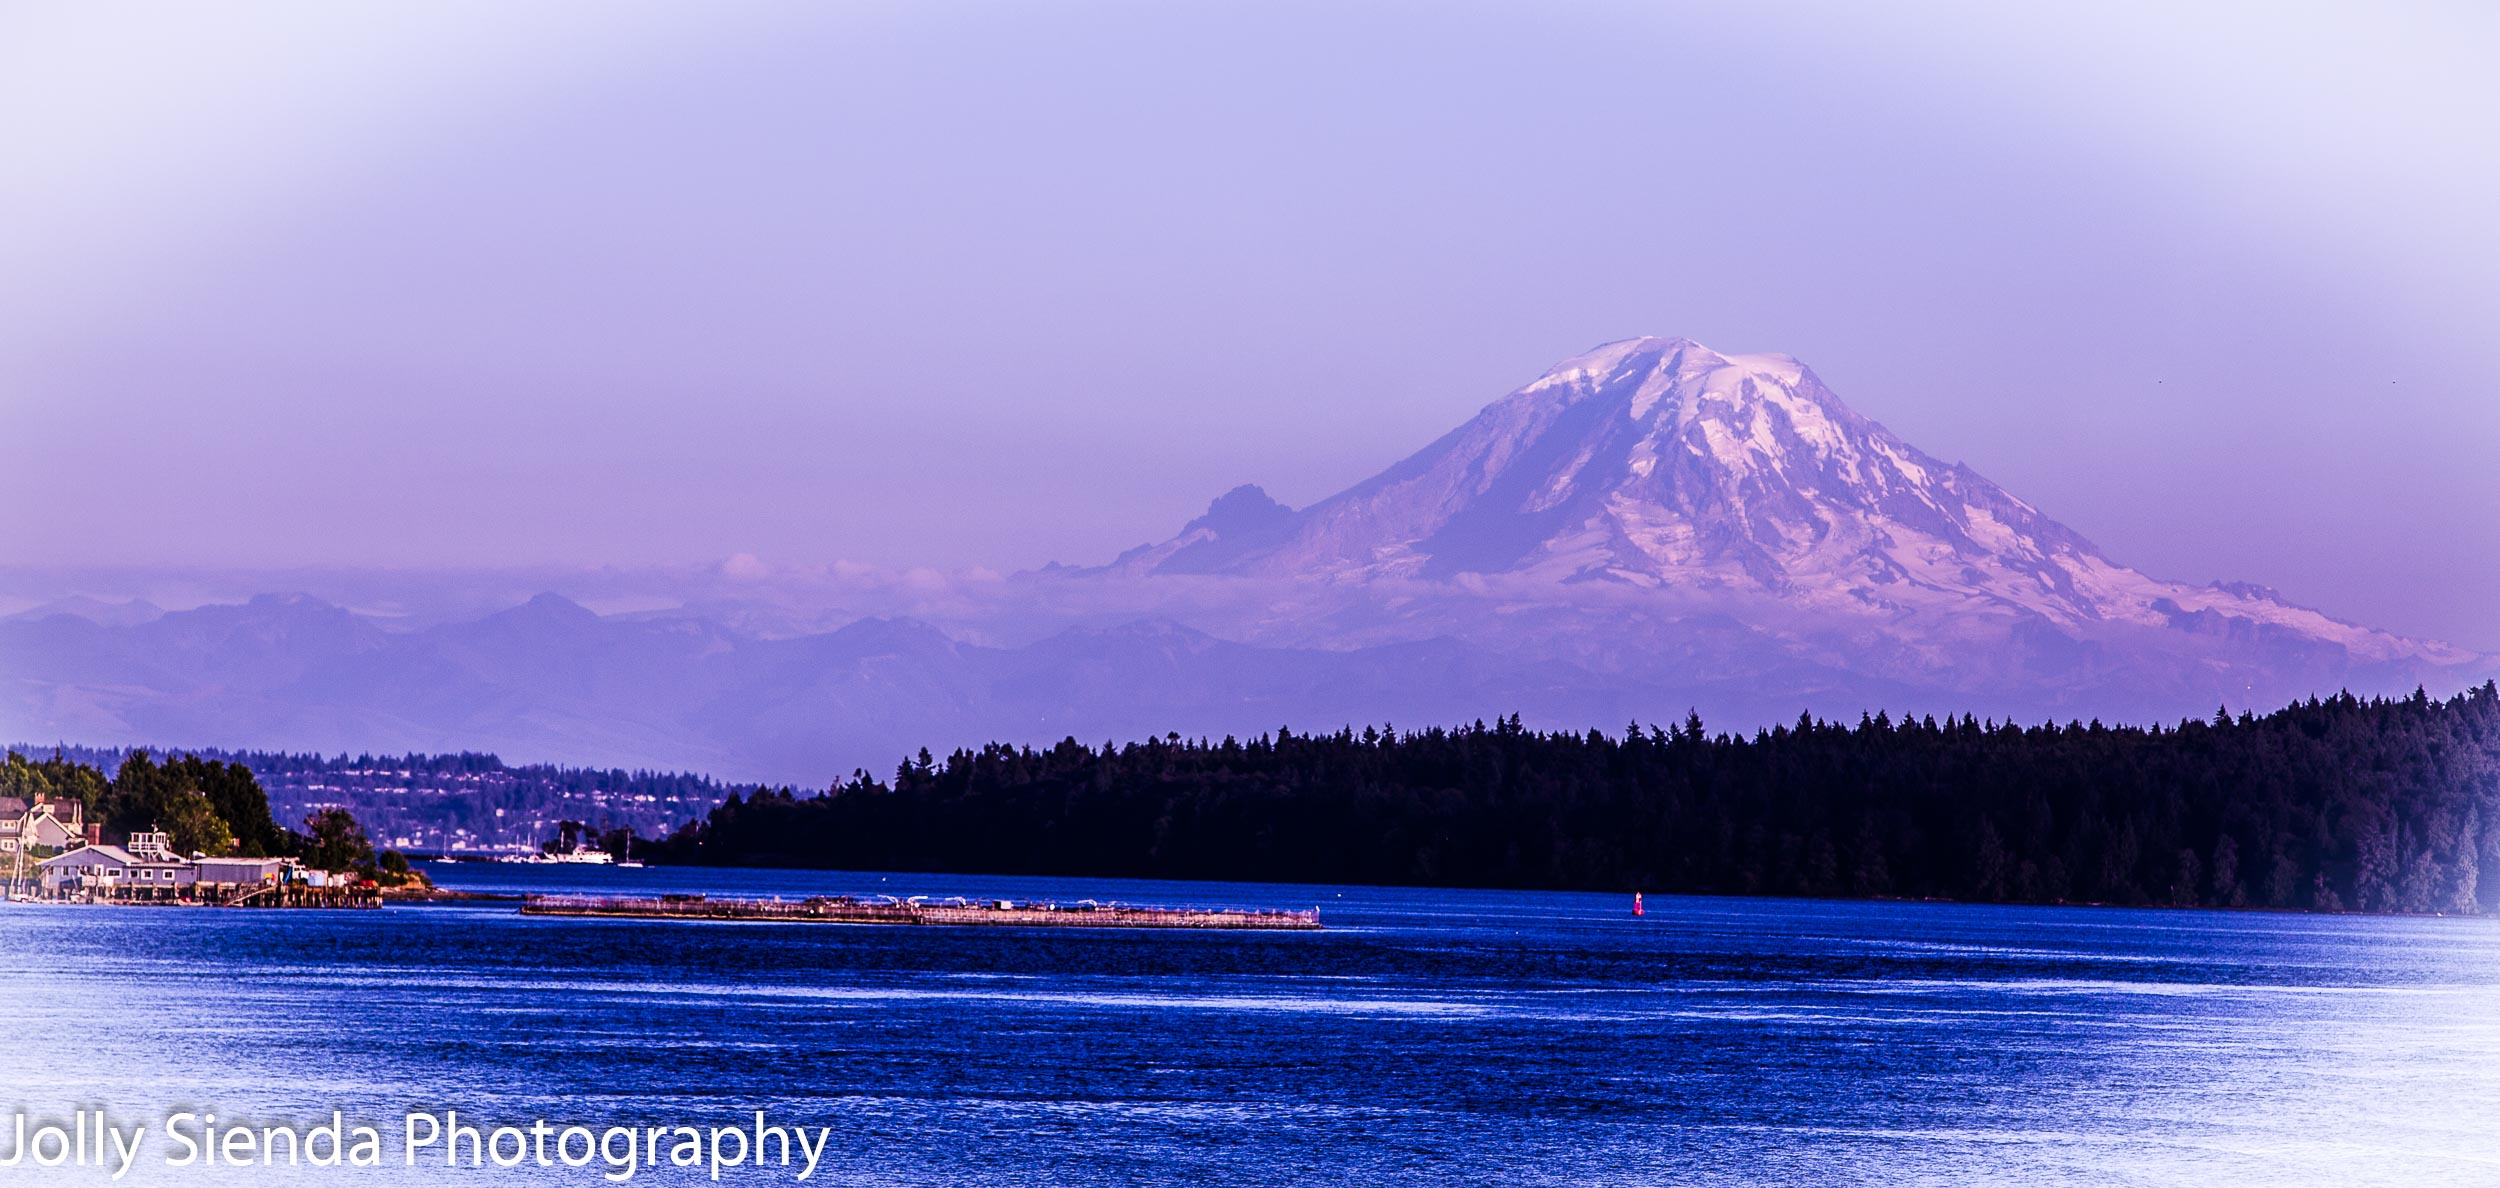 Mount Rainier at dusk towers over the Puget Sound during a pink